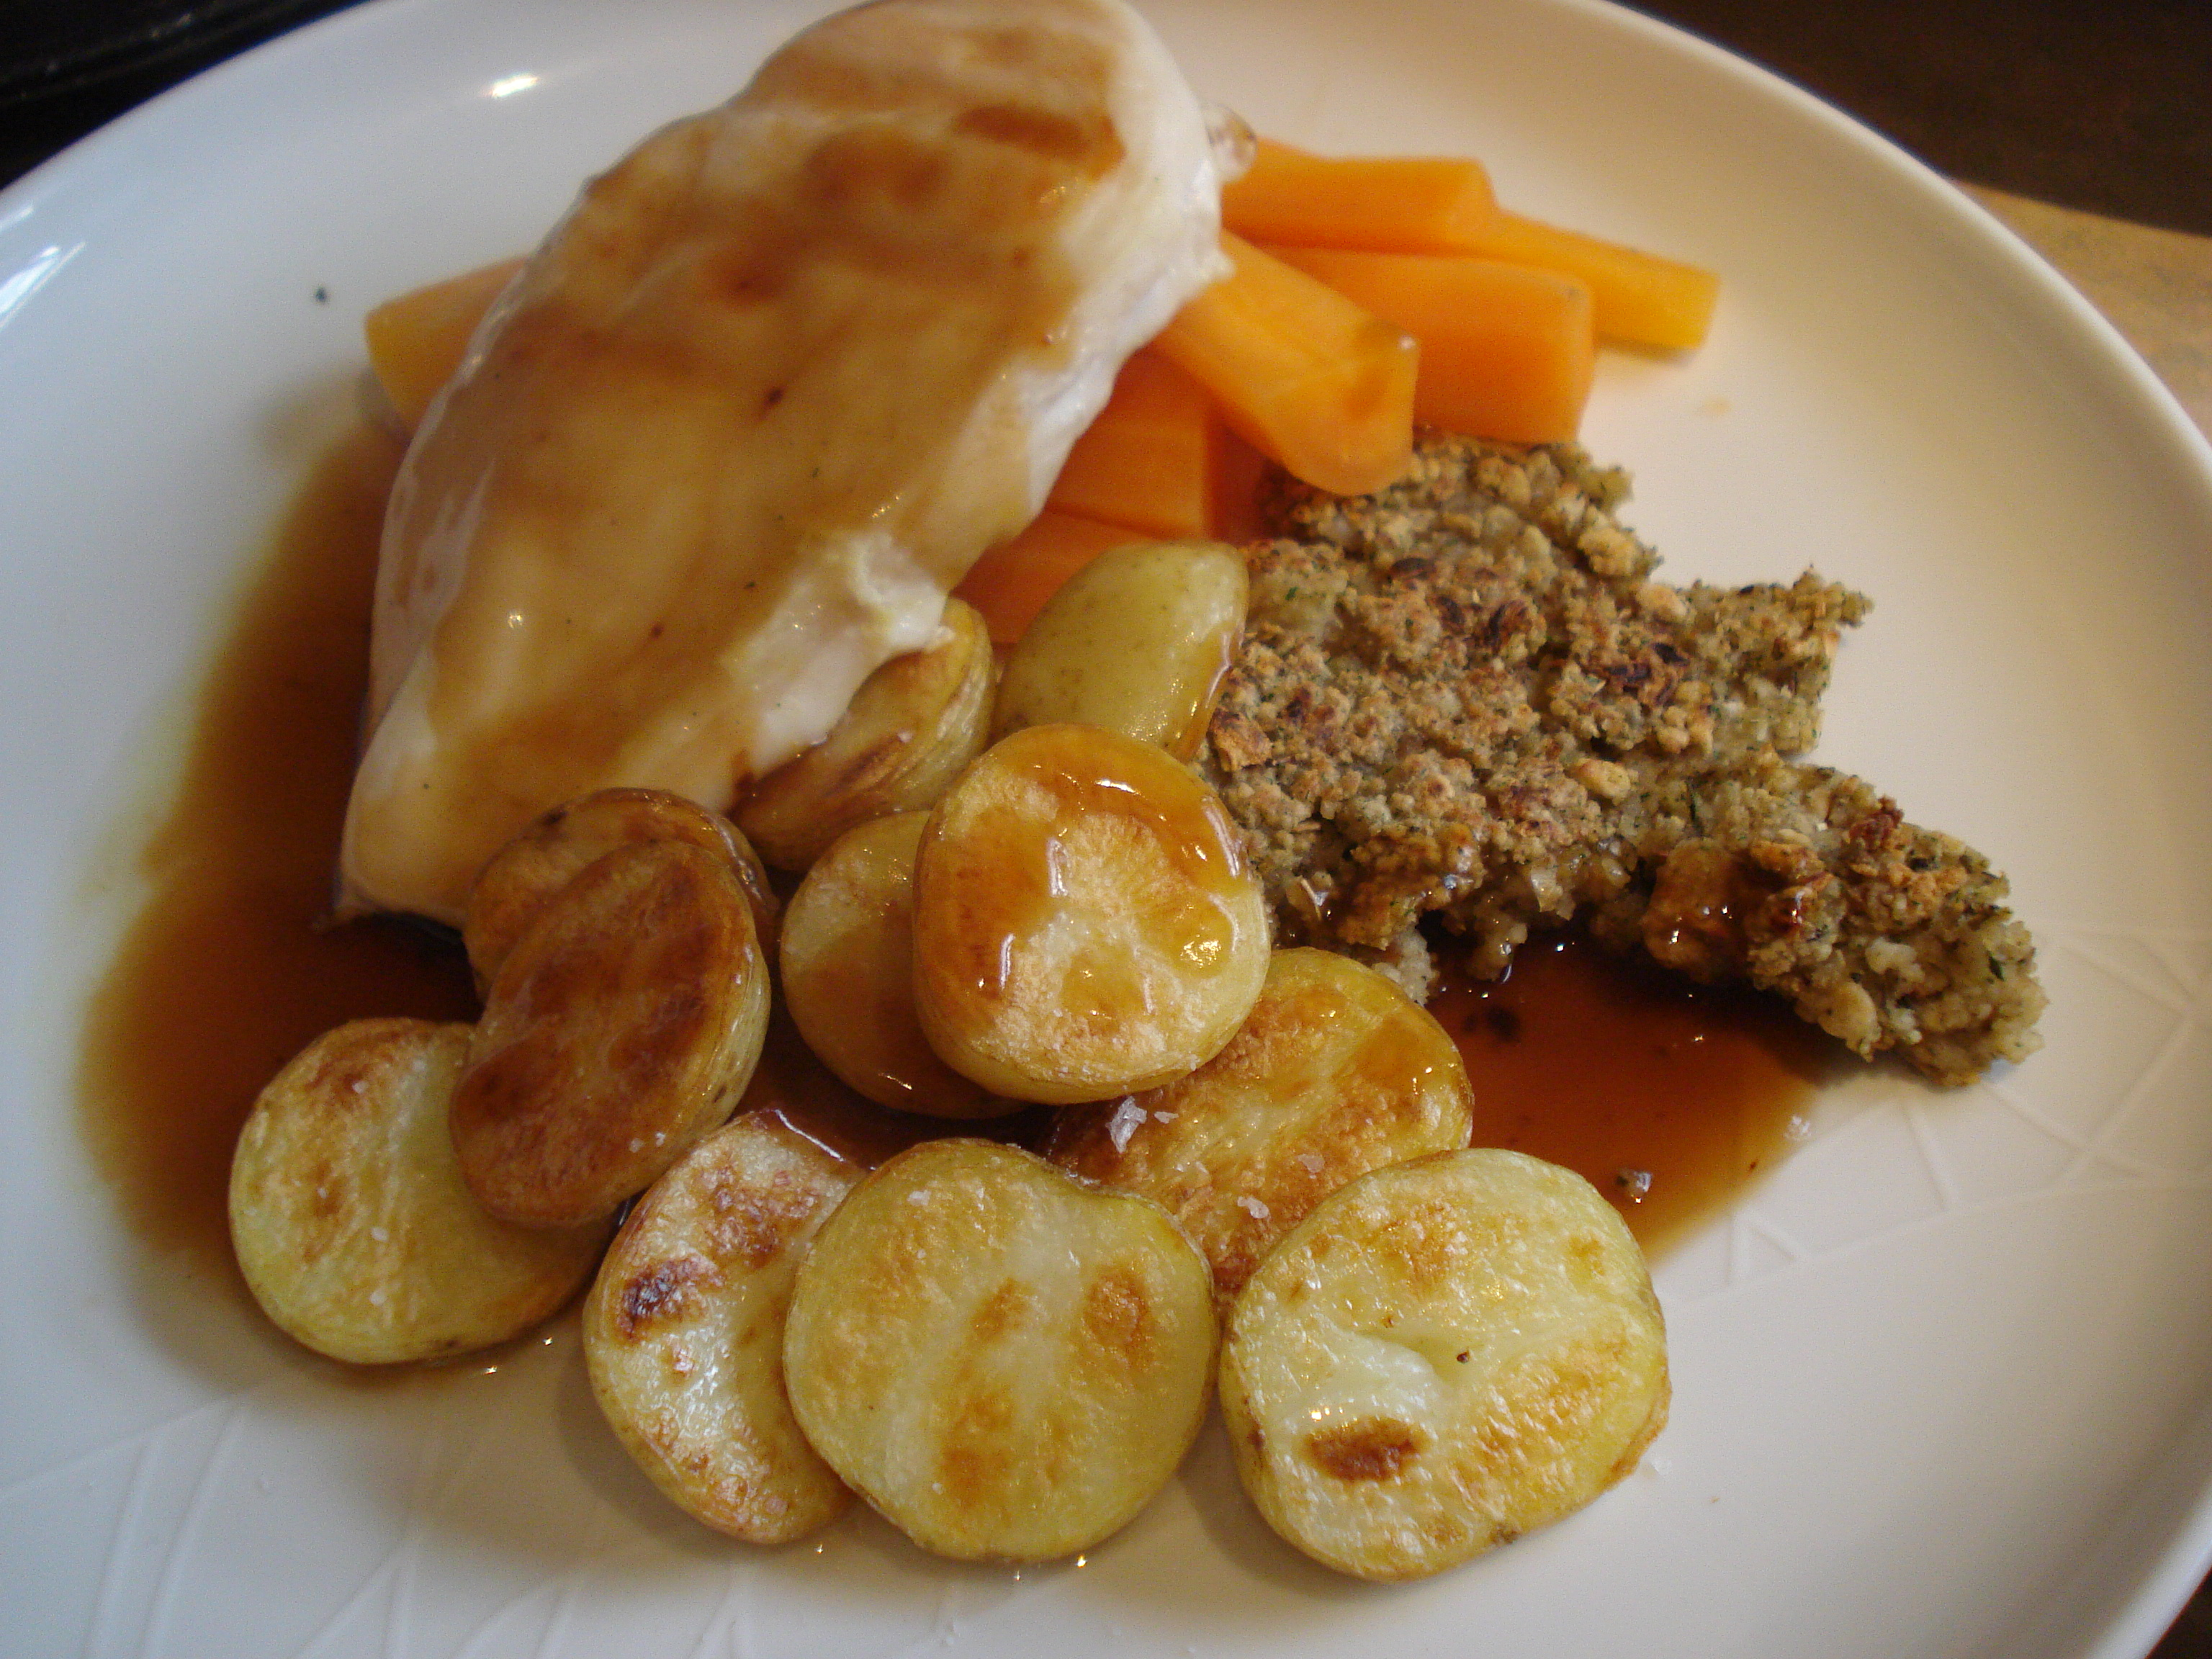 grilled chicken, roast potatoes, stuffing, carrots and gravy